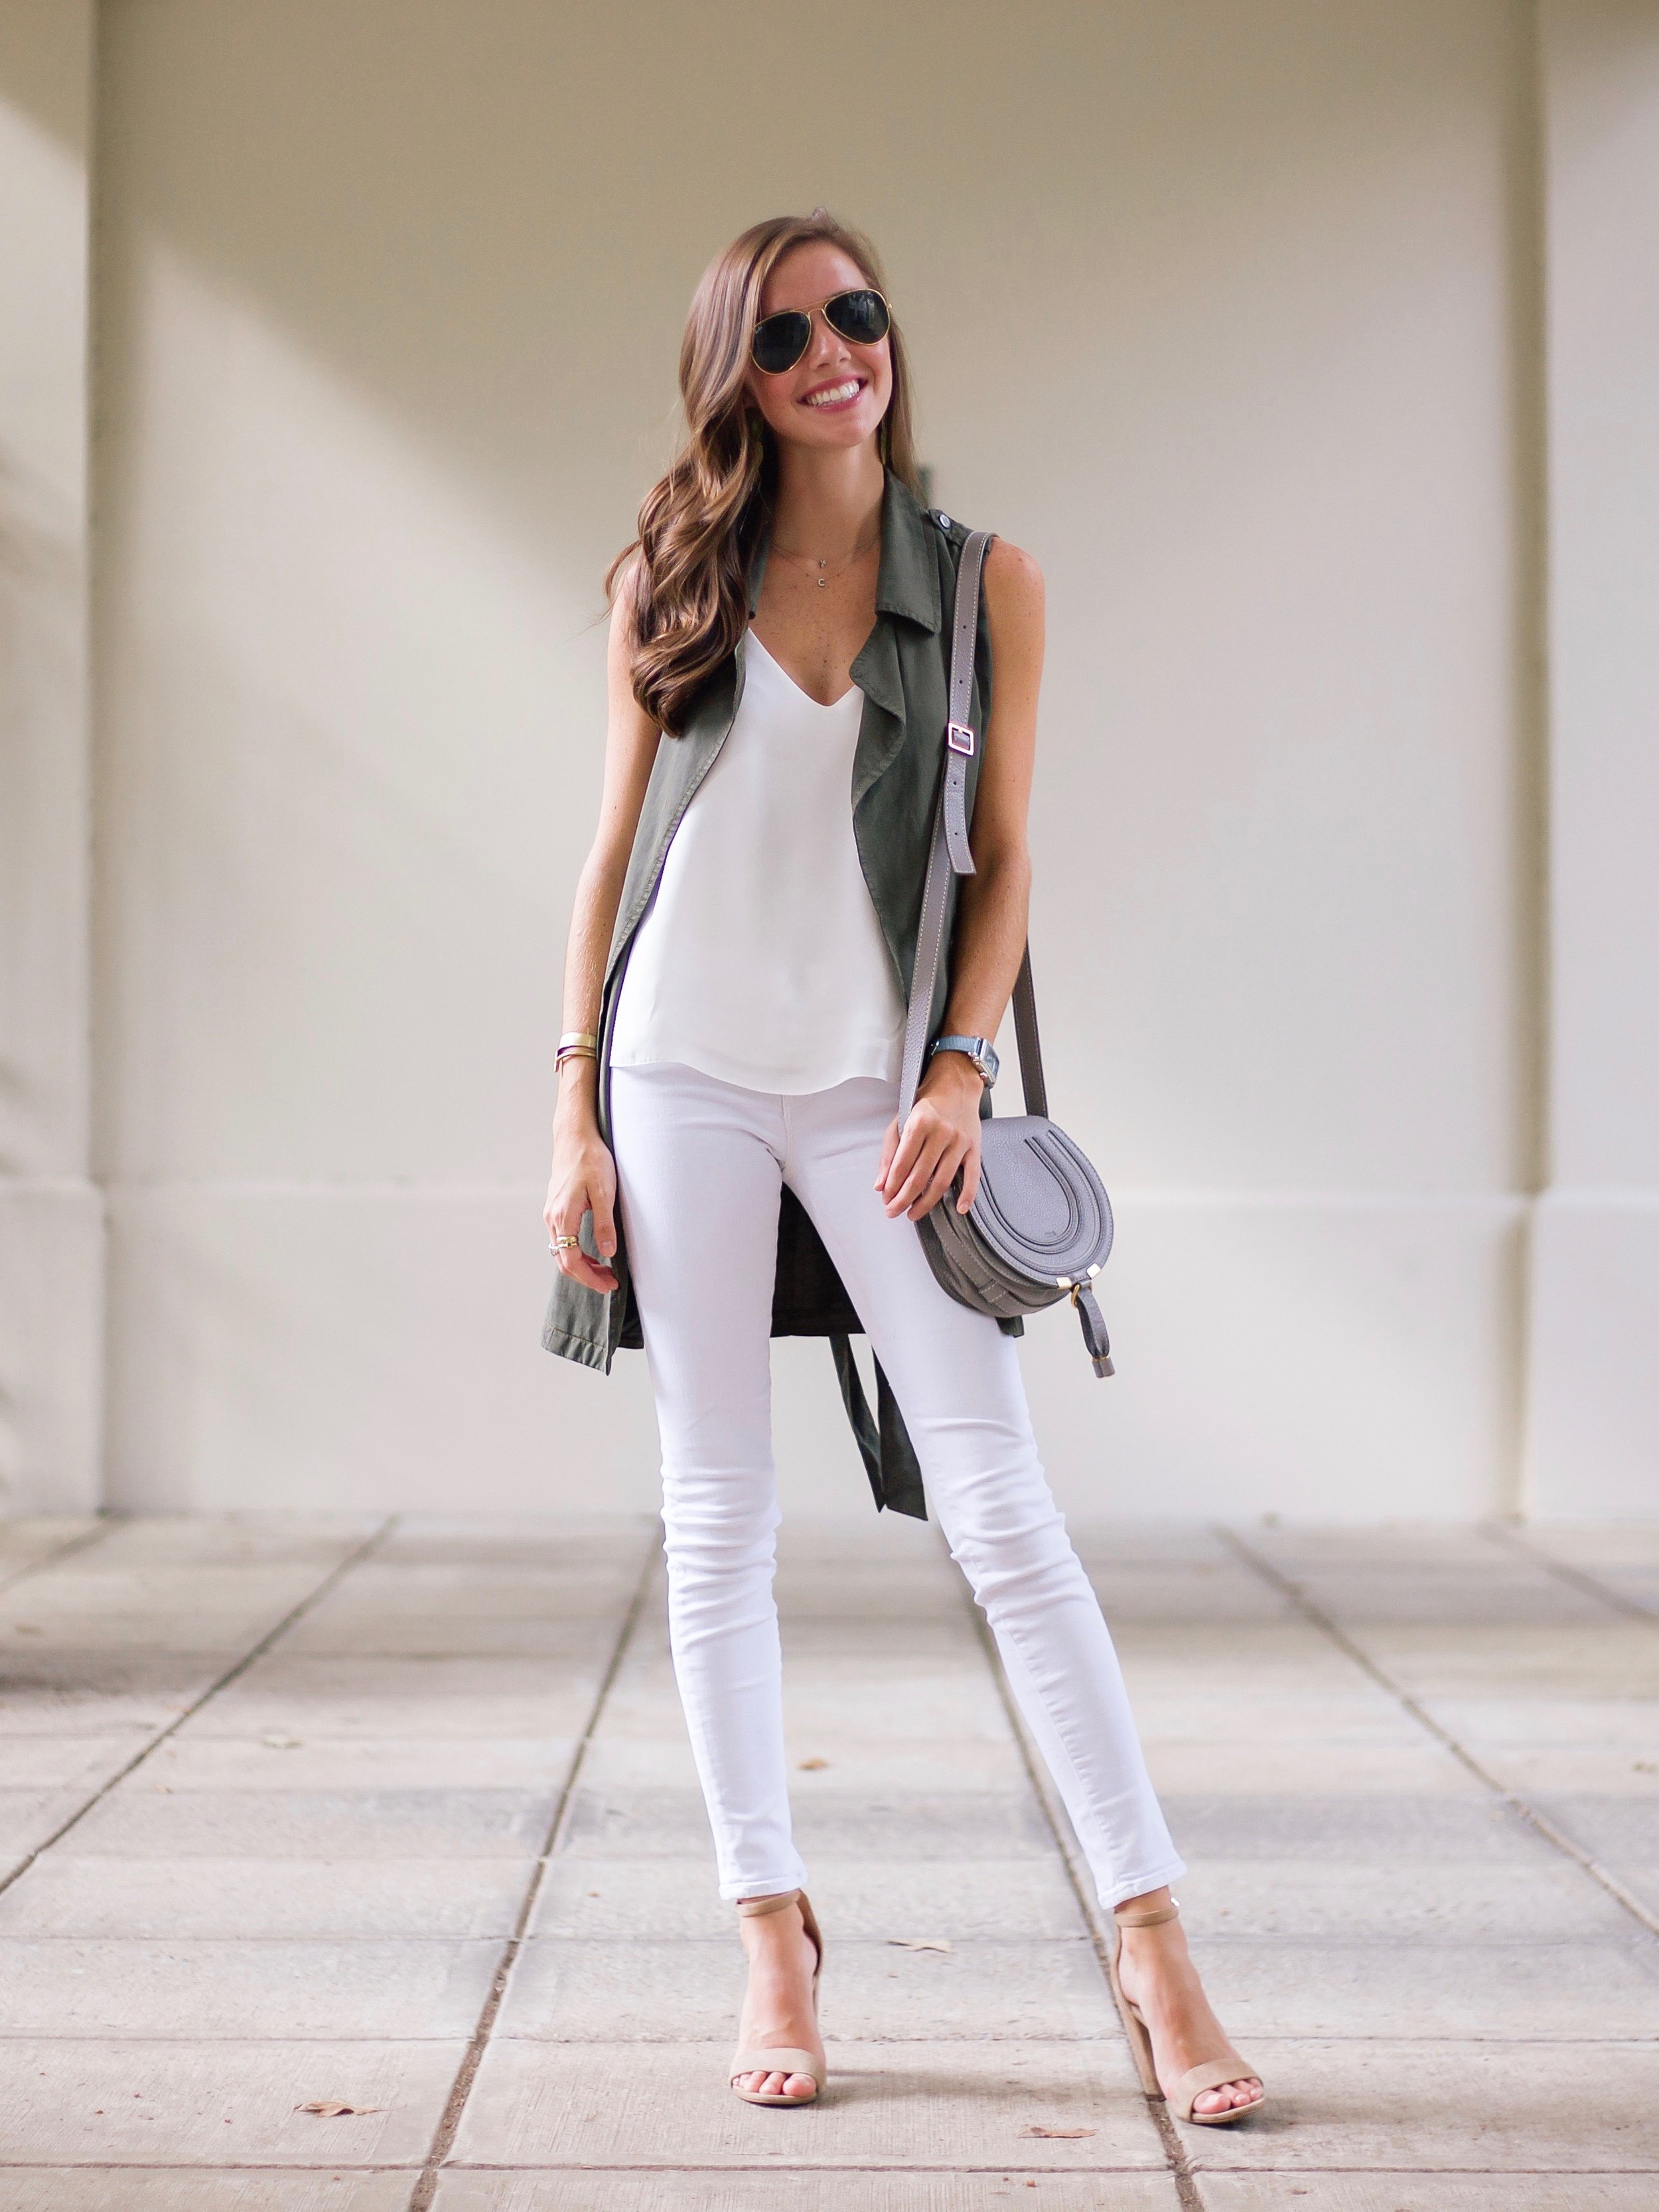 LCB STYLE FASHION BLOGGER MICHELE WATCHES (5 of 40).jpg